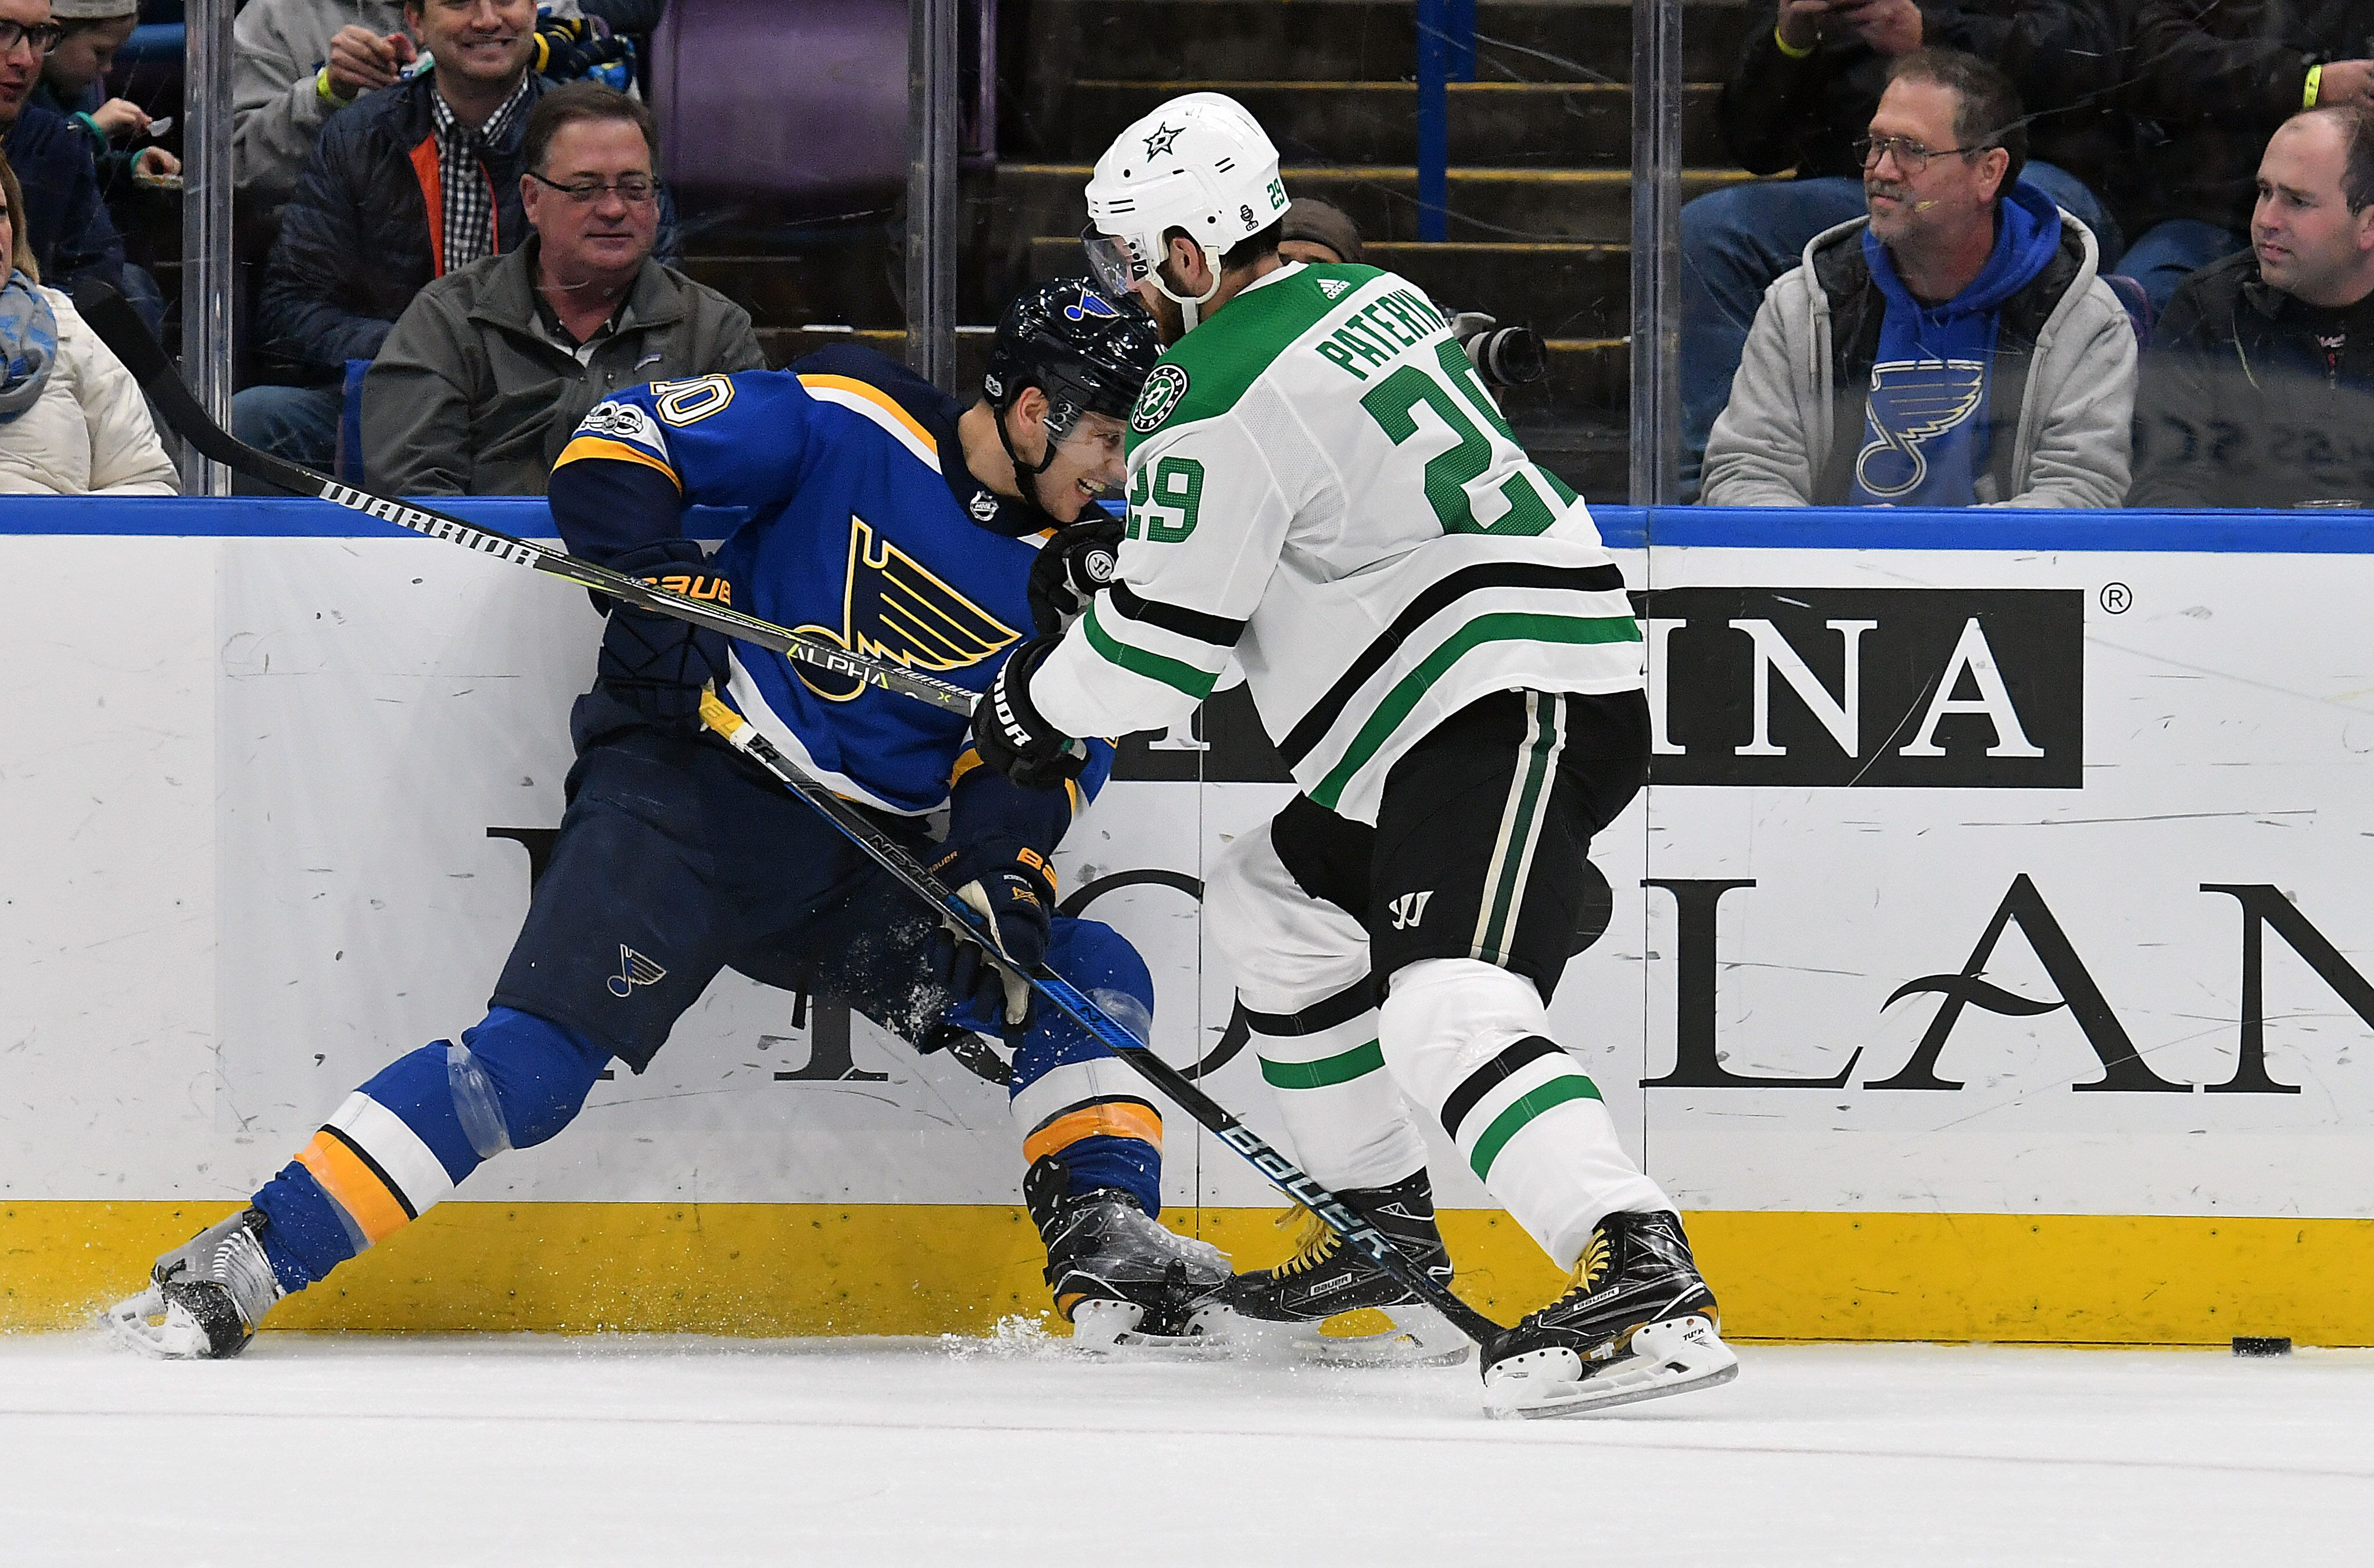 891034362-nhl-dec-07-stars-at-blues.jpg